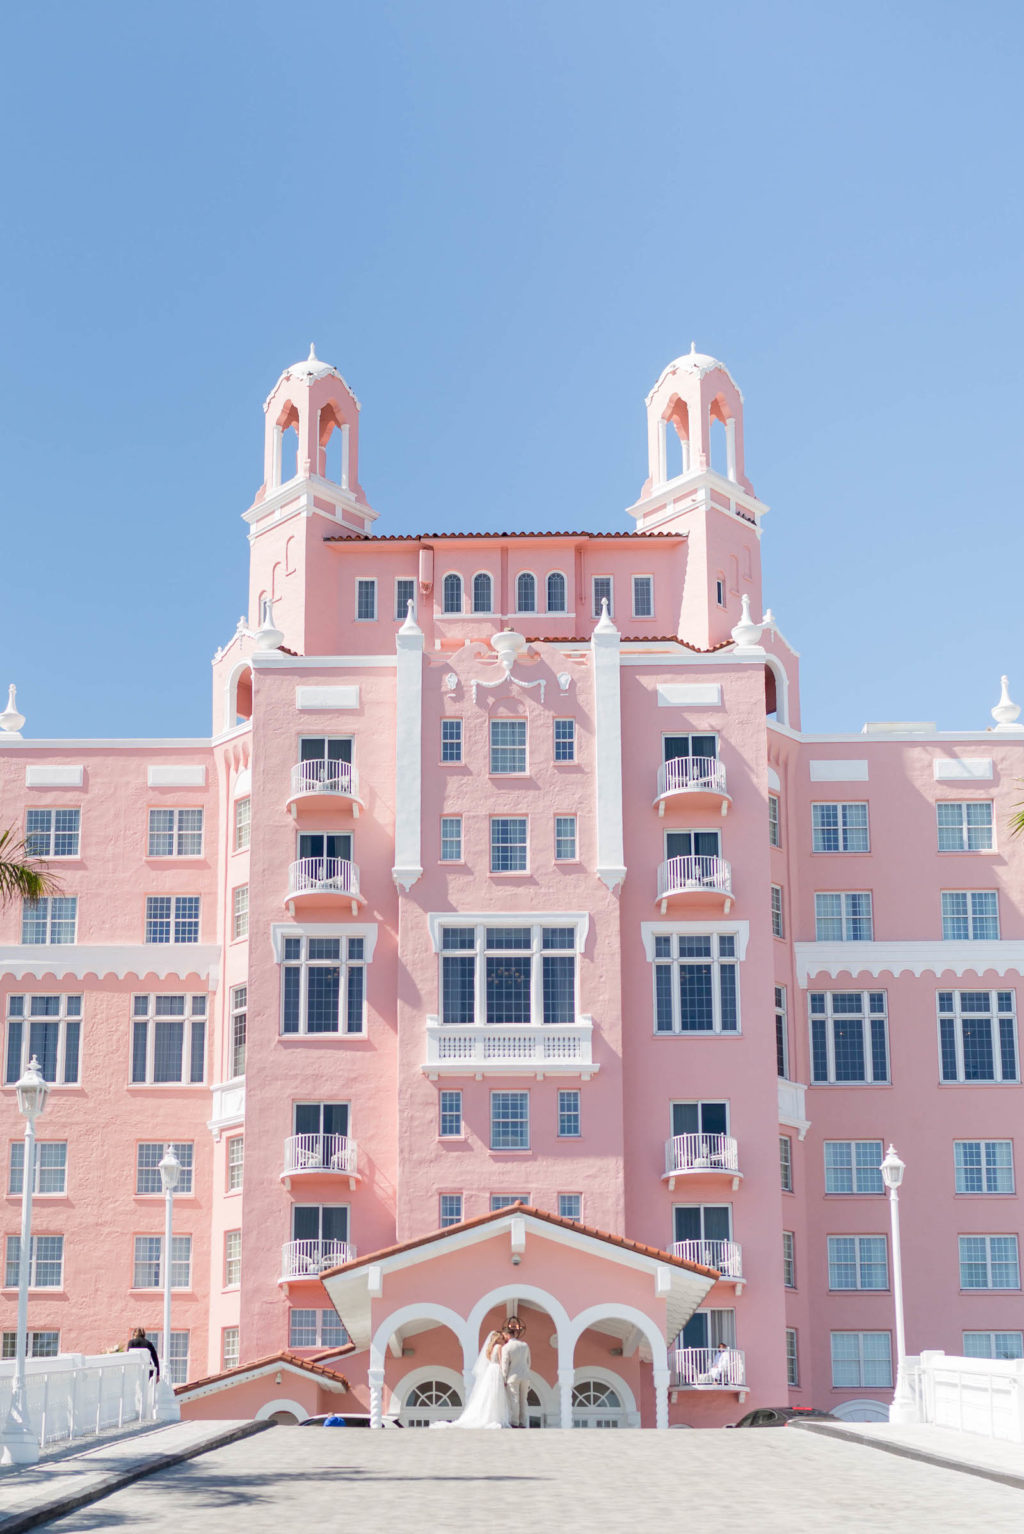 Bride and Groom Outdoor Portrait at St. Pete Beach Wedding Venue The Don CeSar Pink Palace